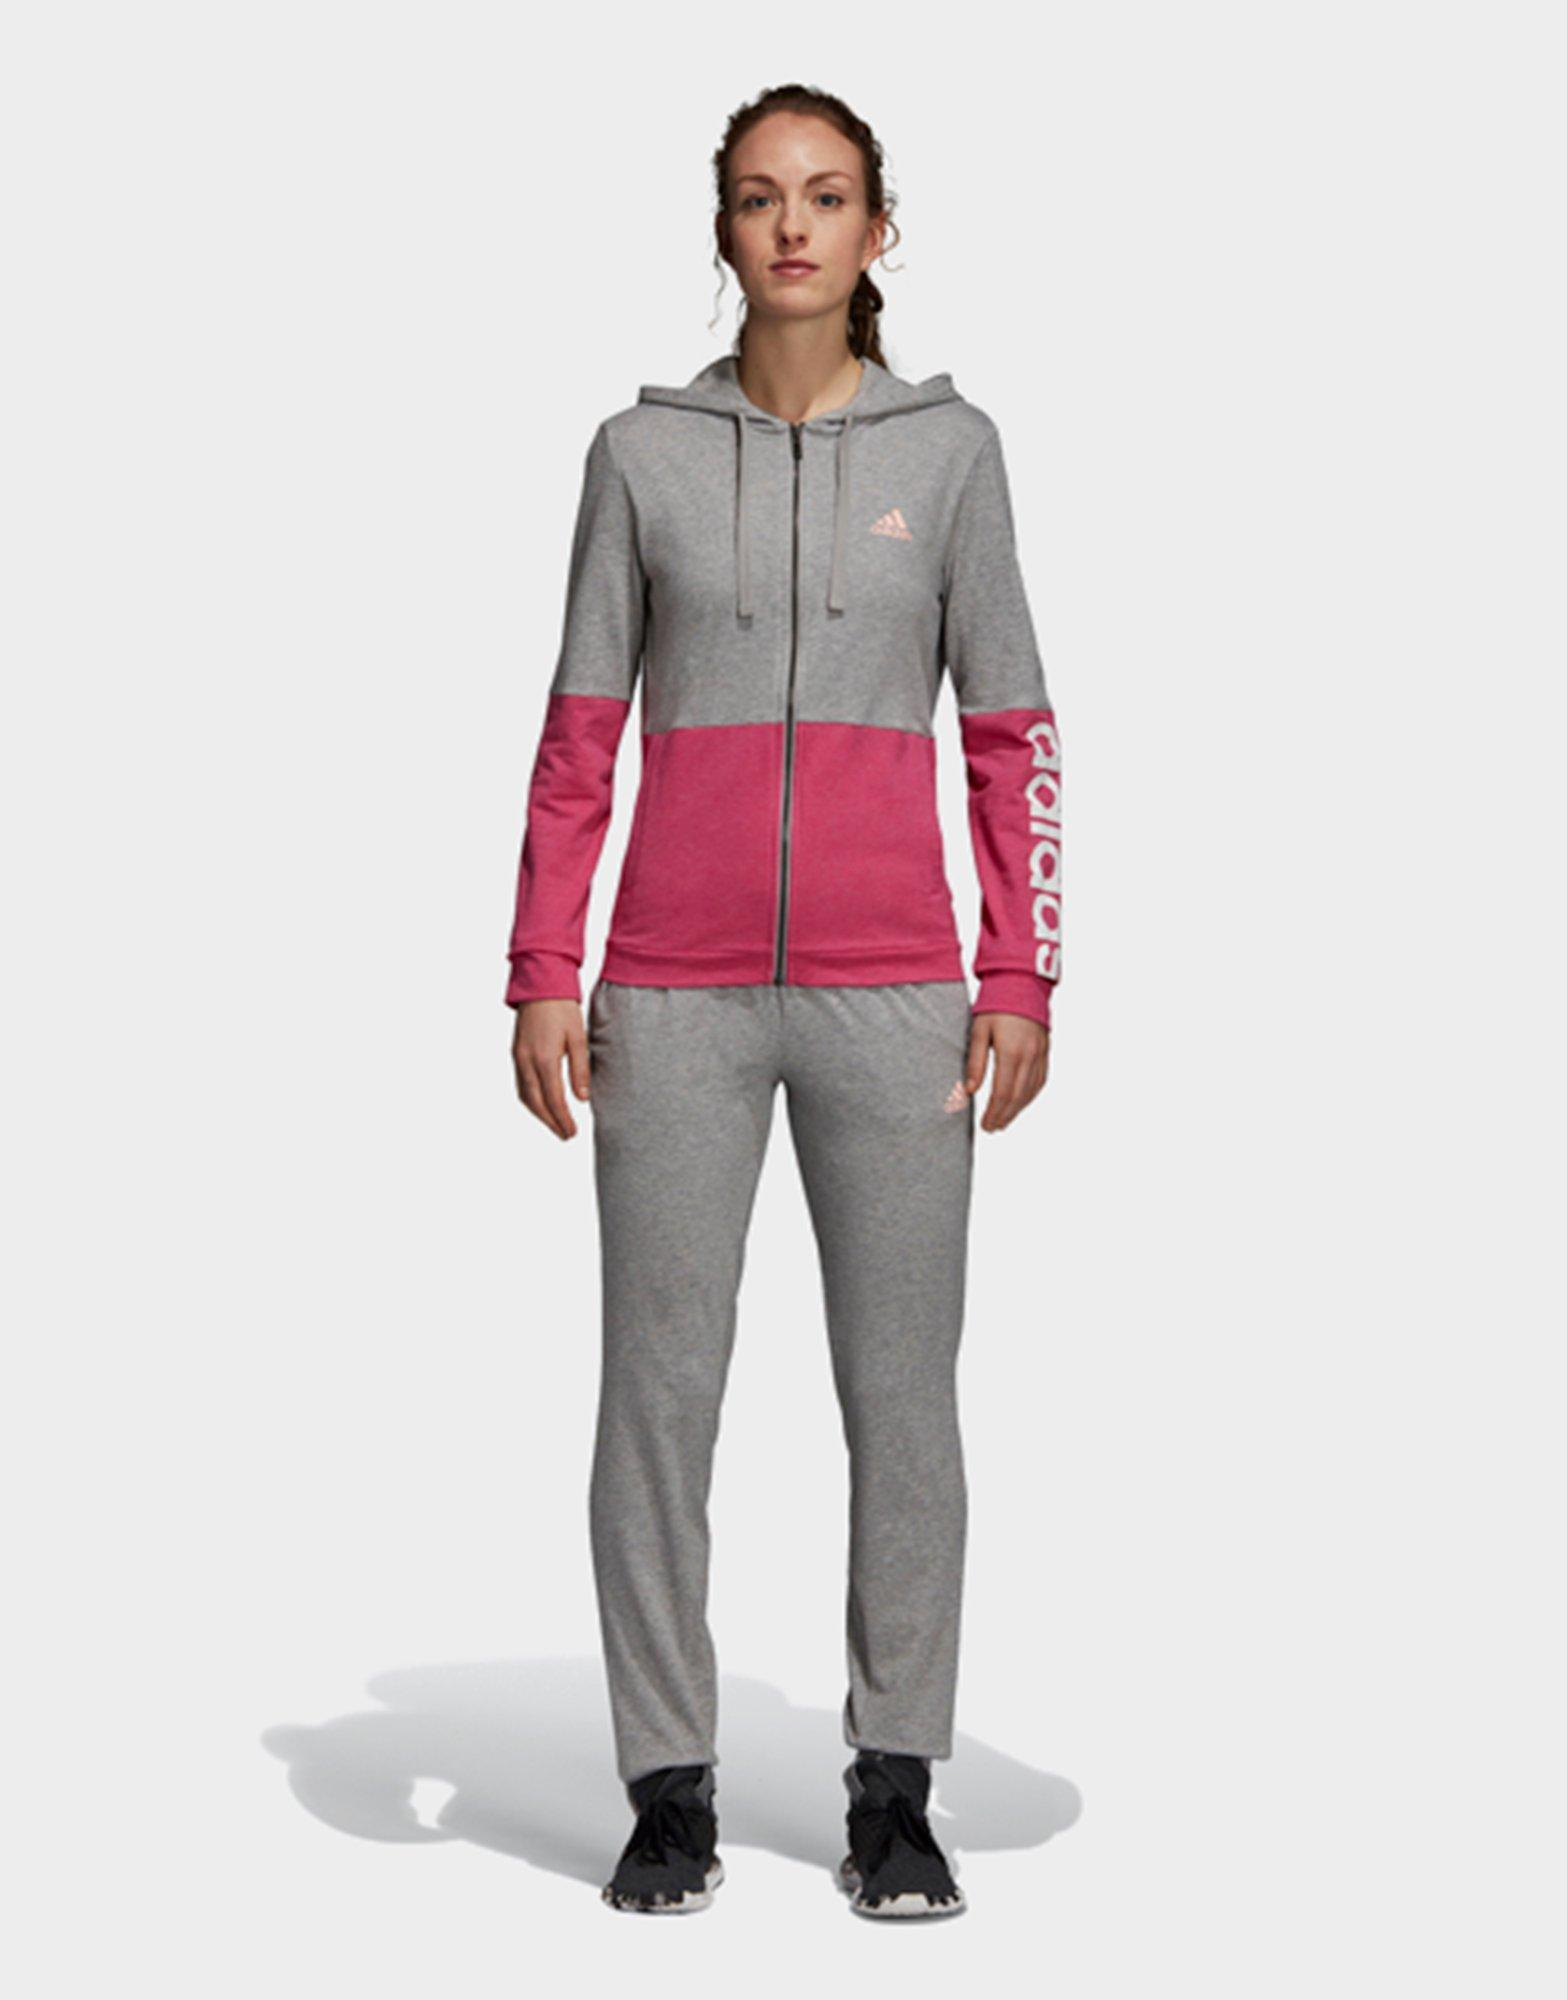 df24c0381e78 Adidas Cotton Marker Track Suit in Gray - Lyst